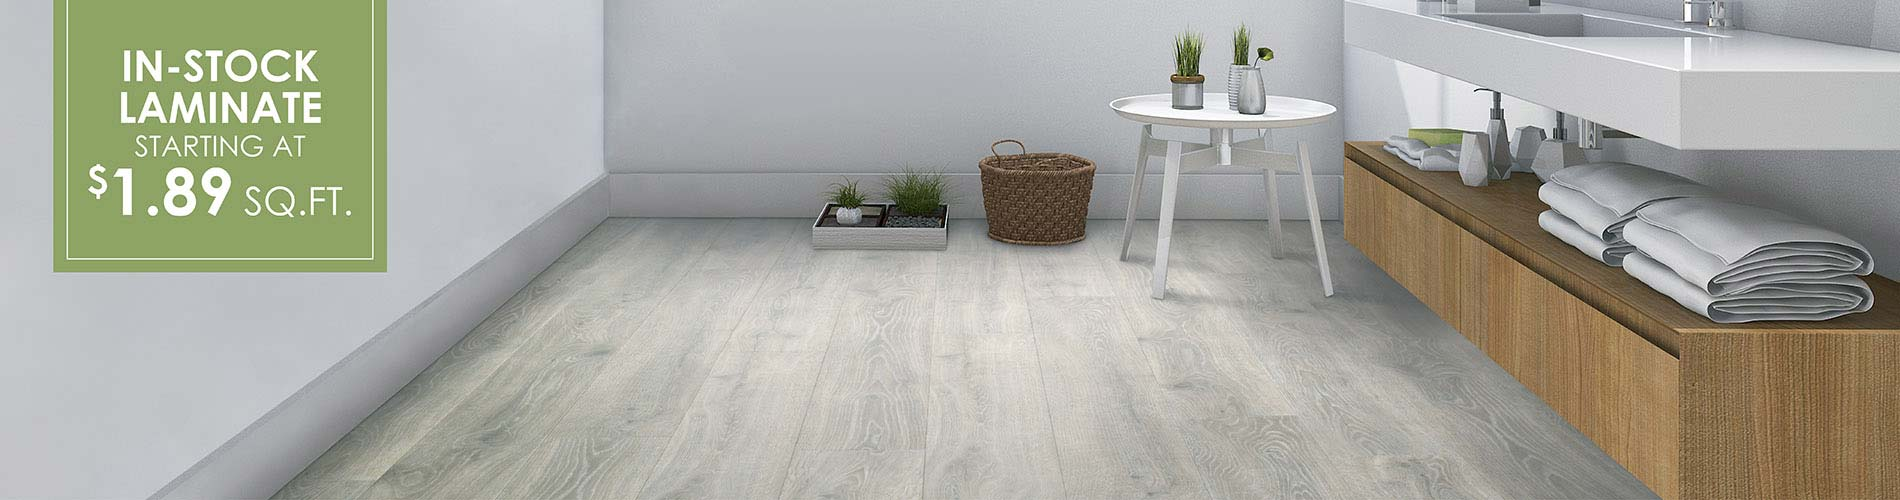 In-stock Laminate flooring starting at $1.89 sq,ft. at J & S Flooring in Georgetown